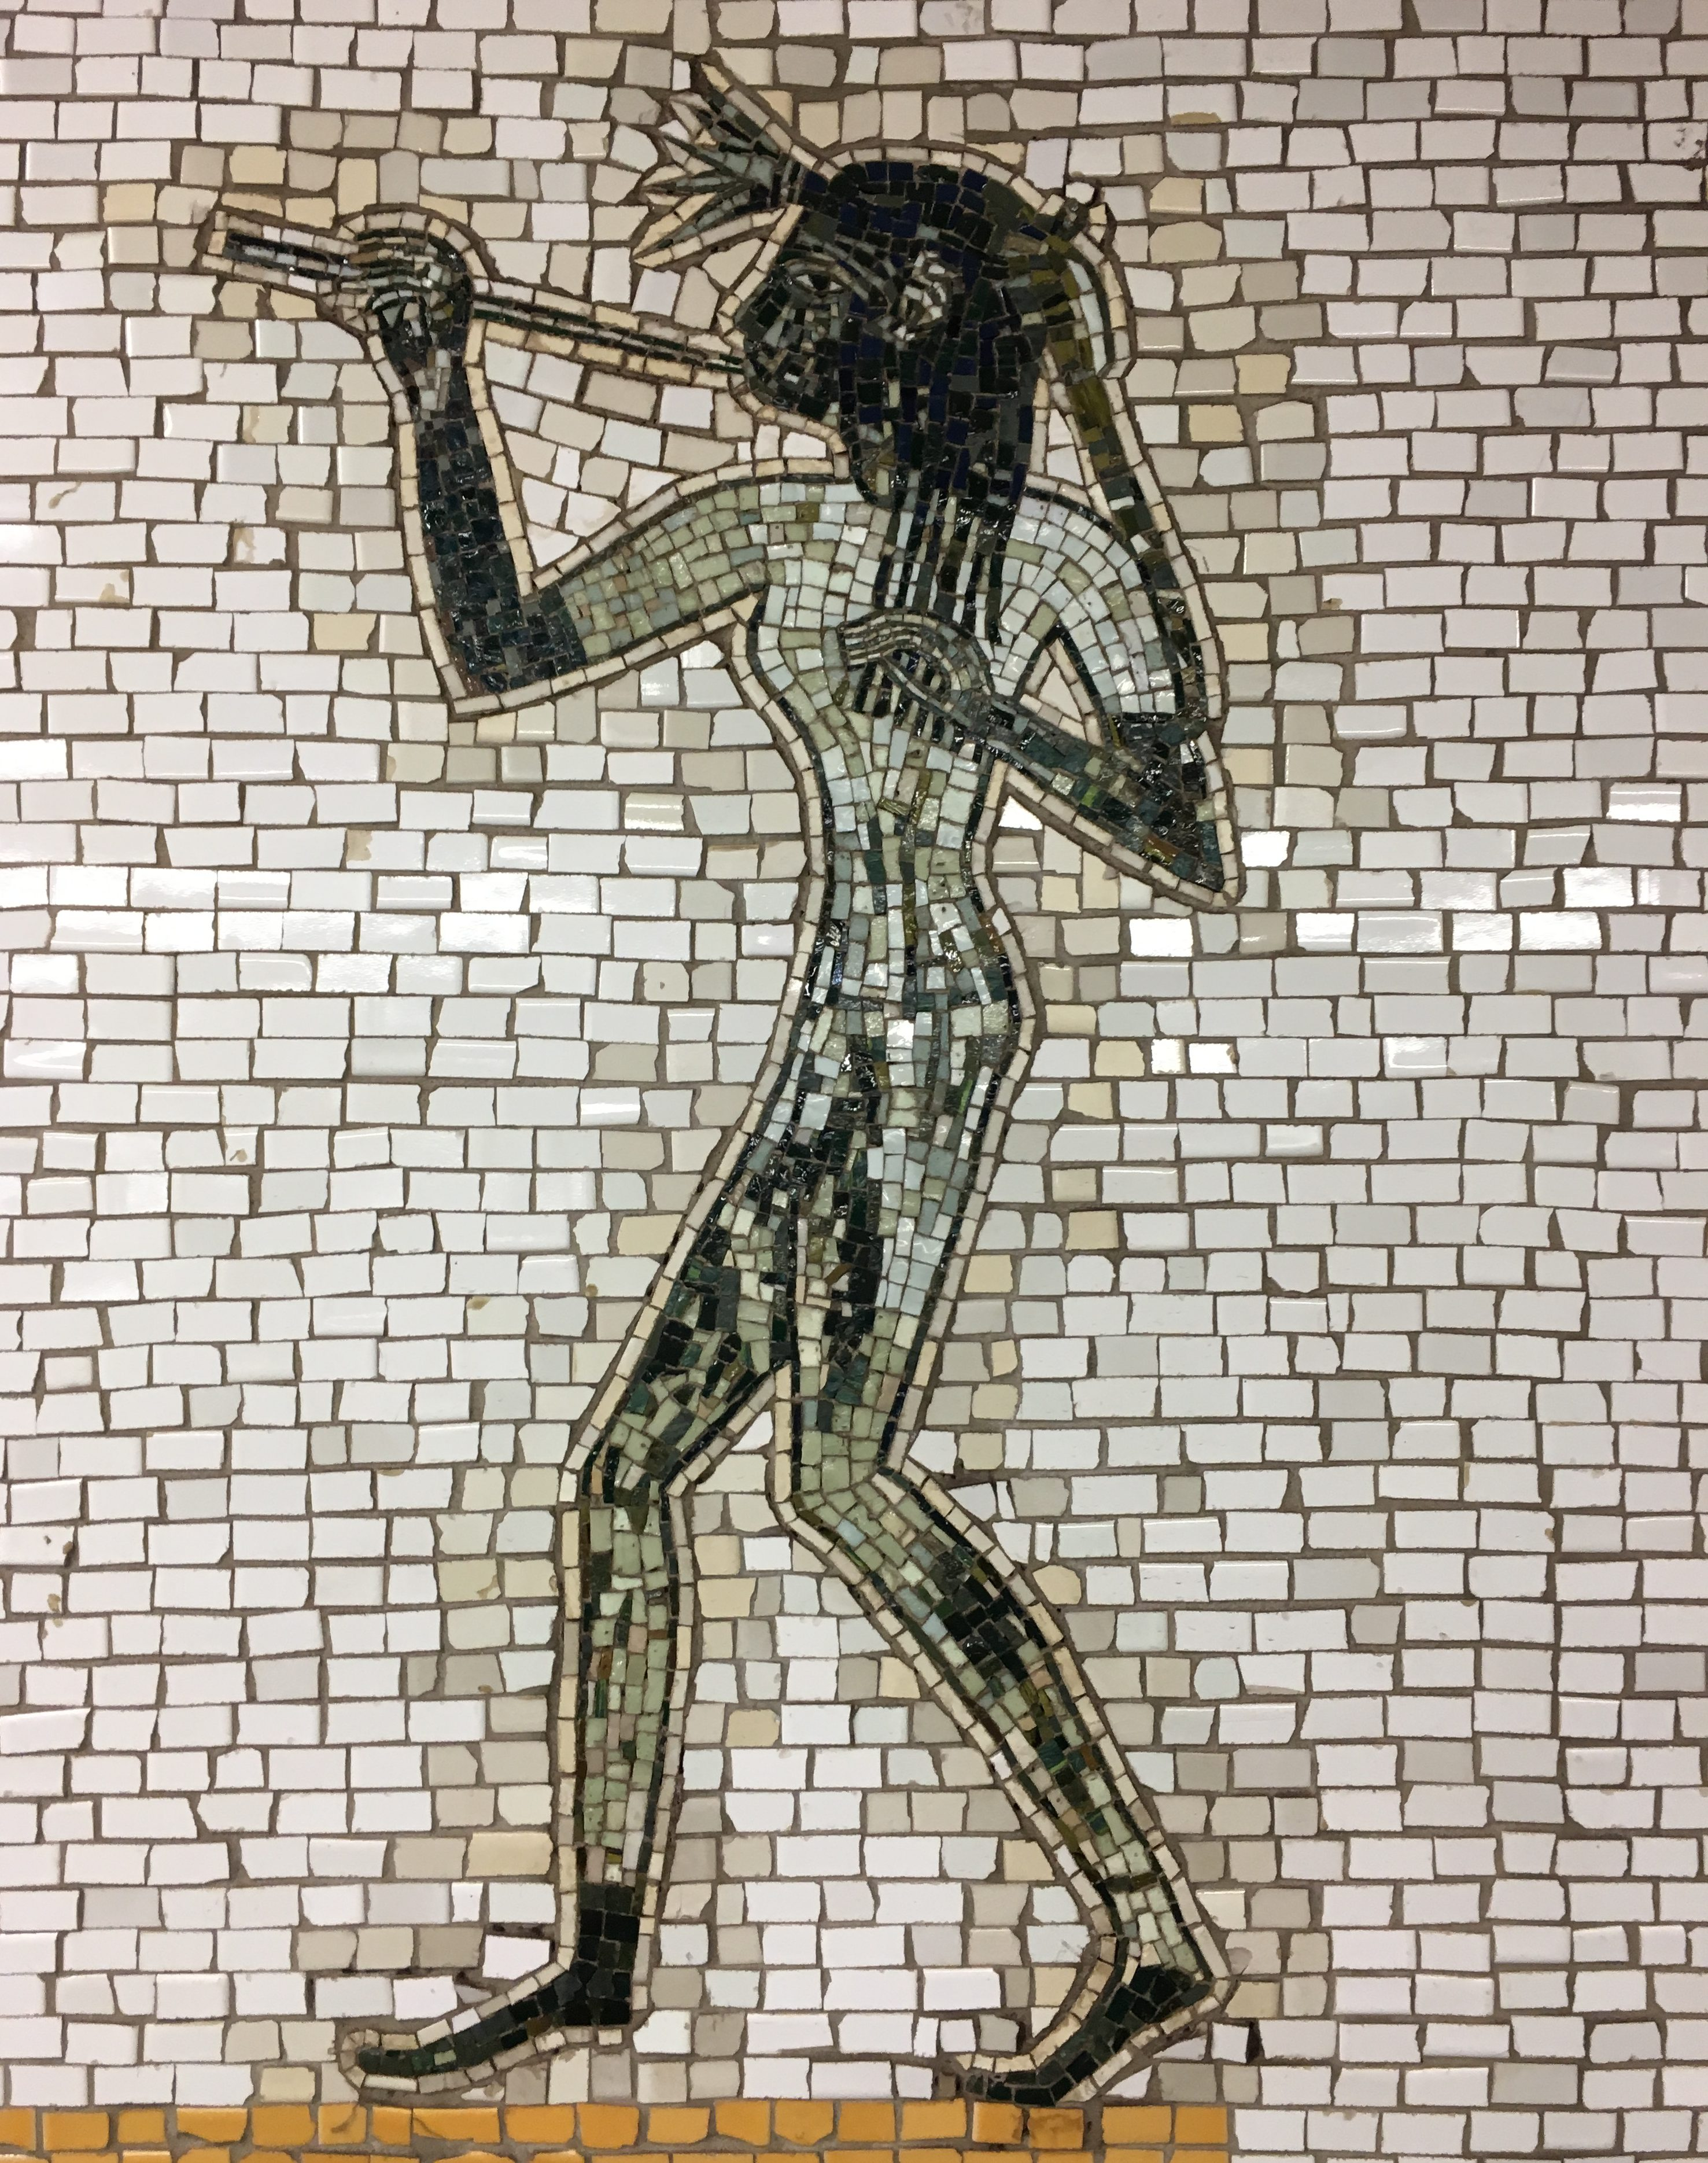 The Diva Tile Mosaic Lincoln Center 66th Street Subway Station